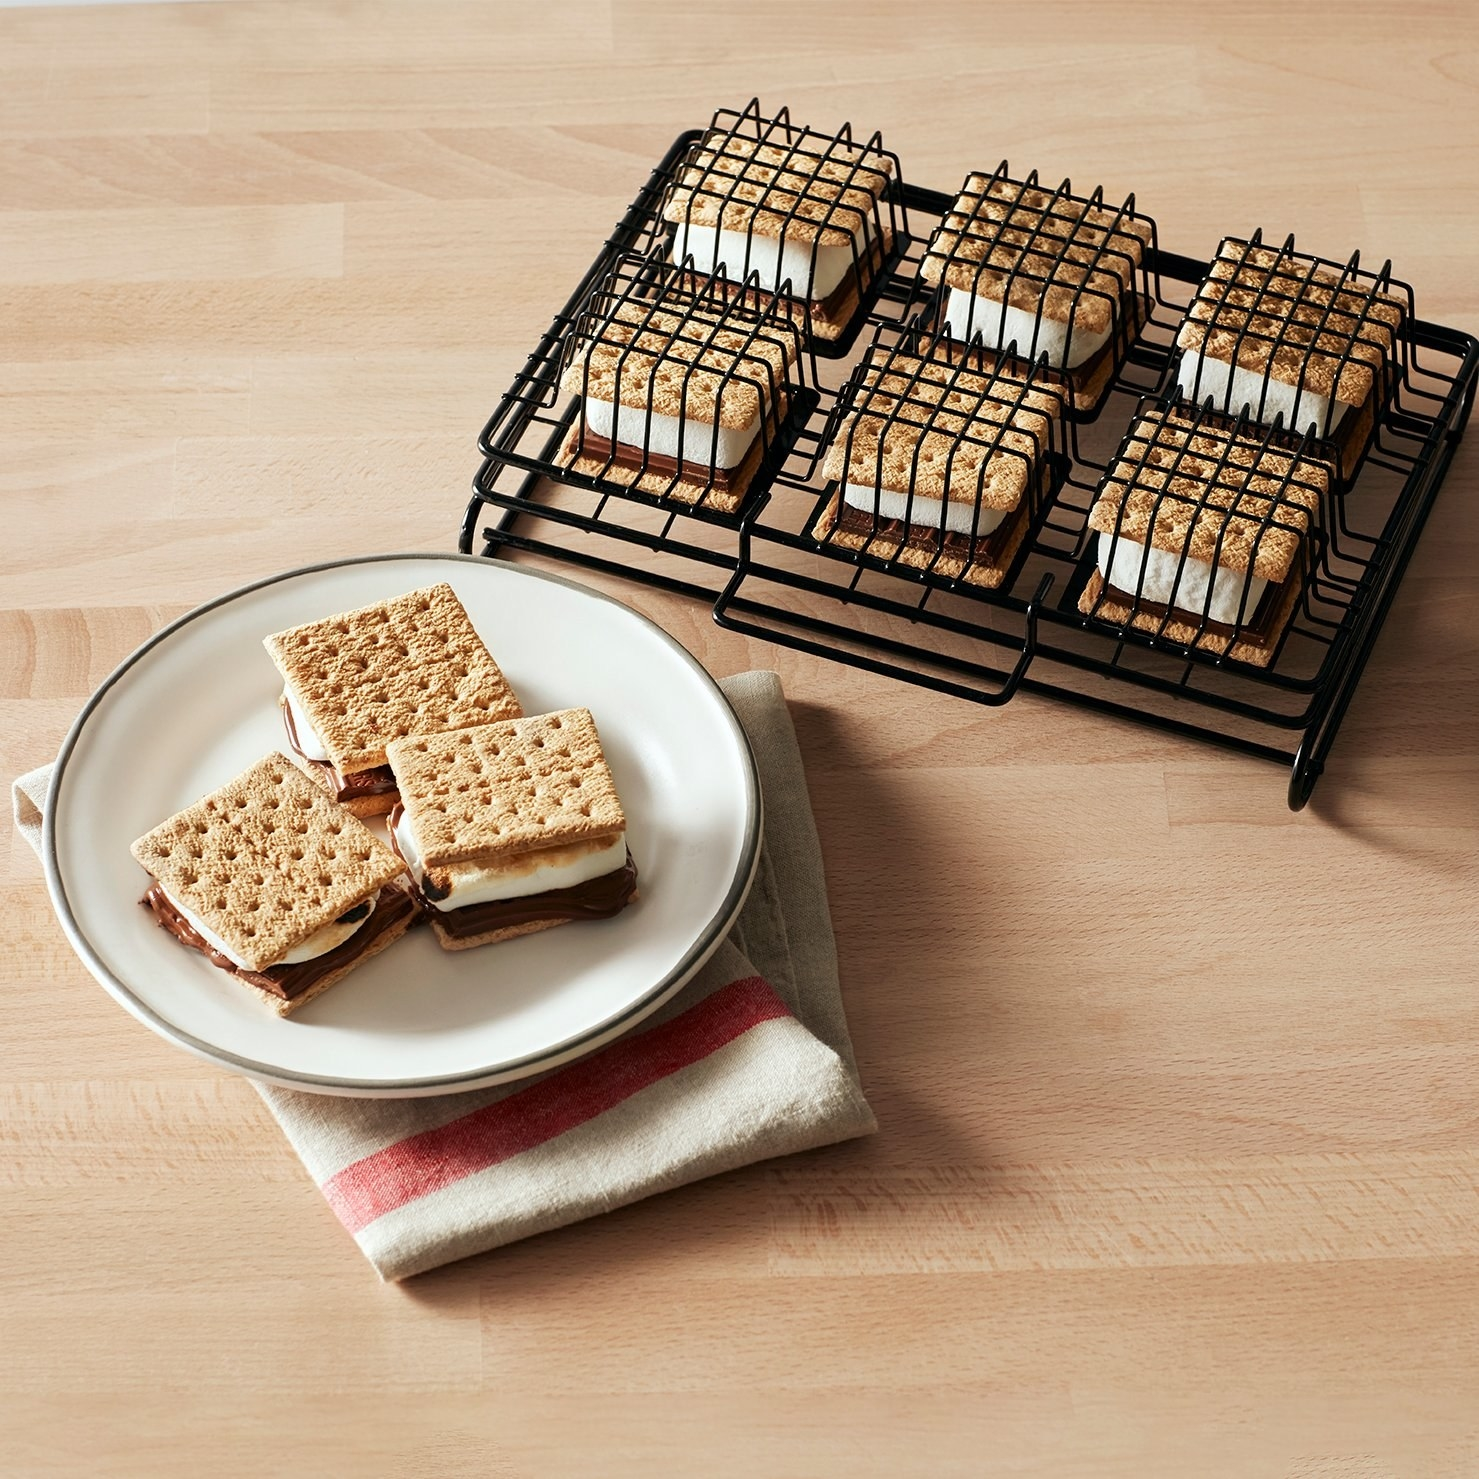 the smores griller with cooked smores on a plate